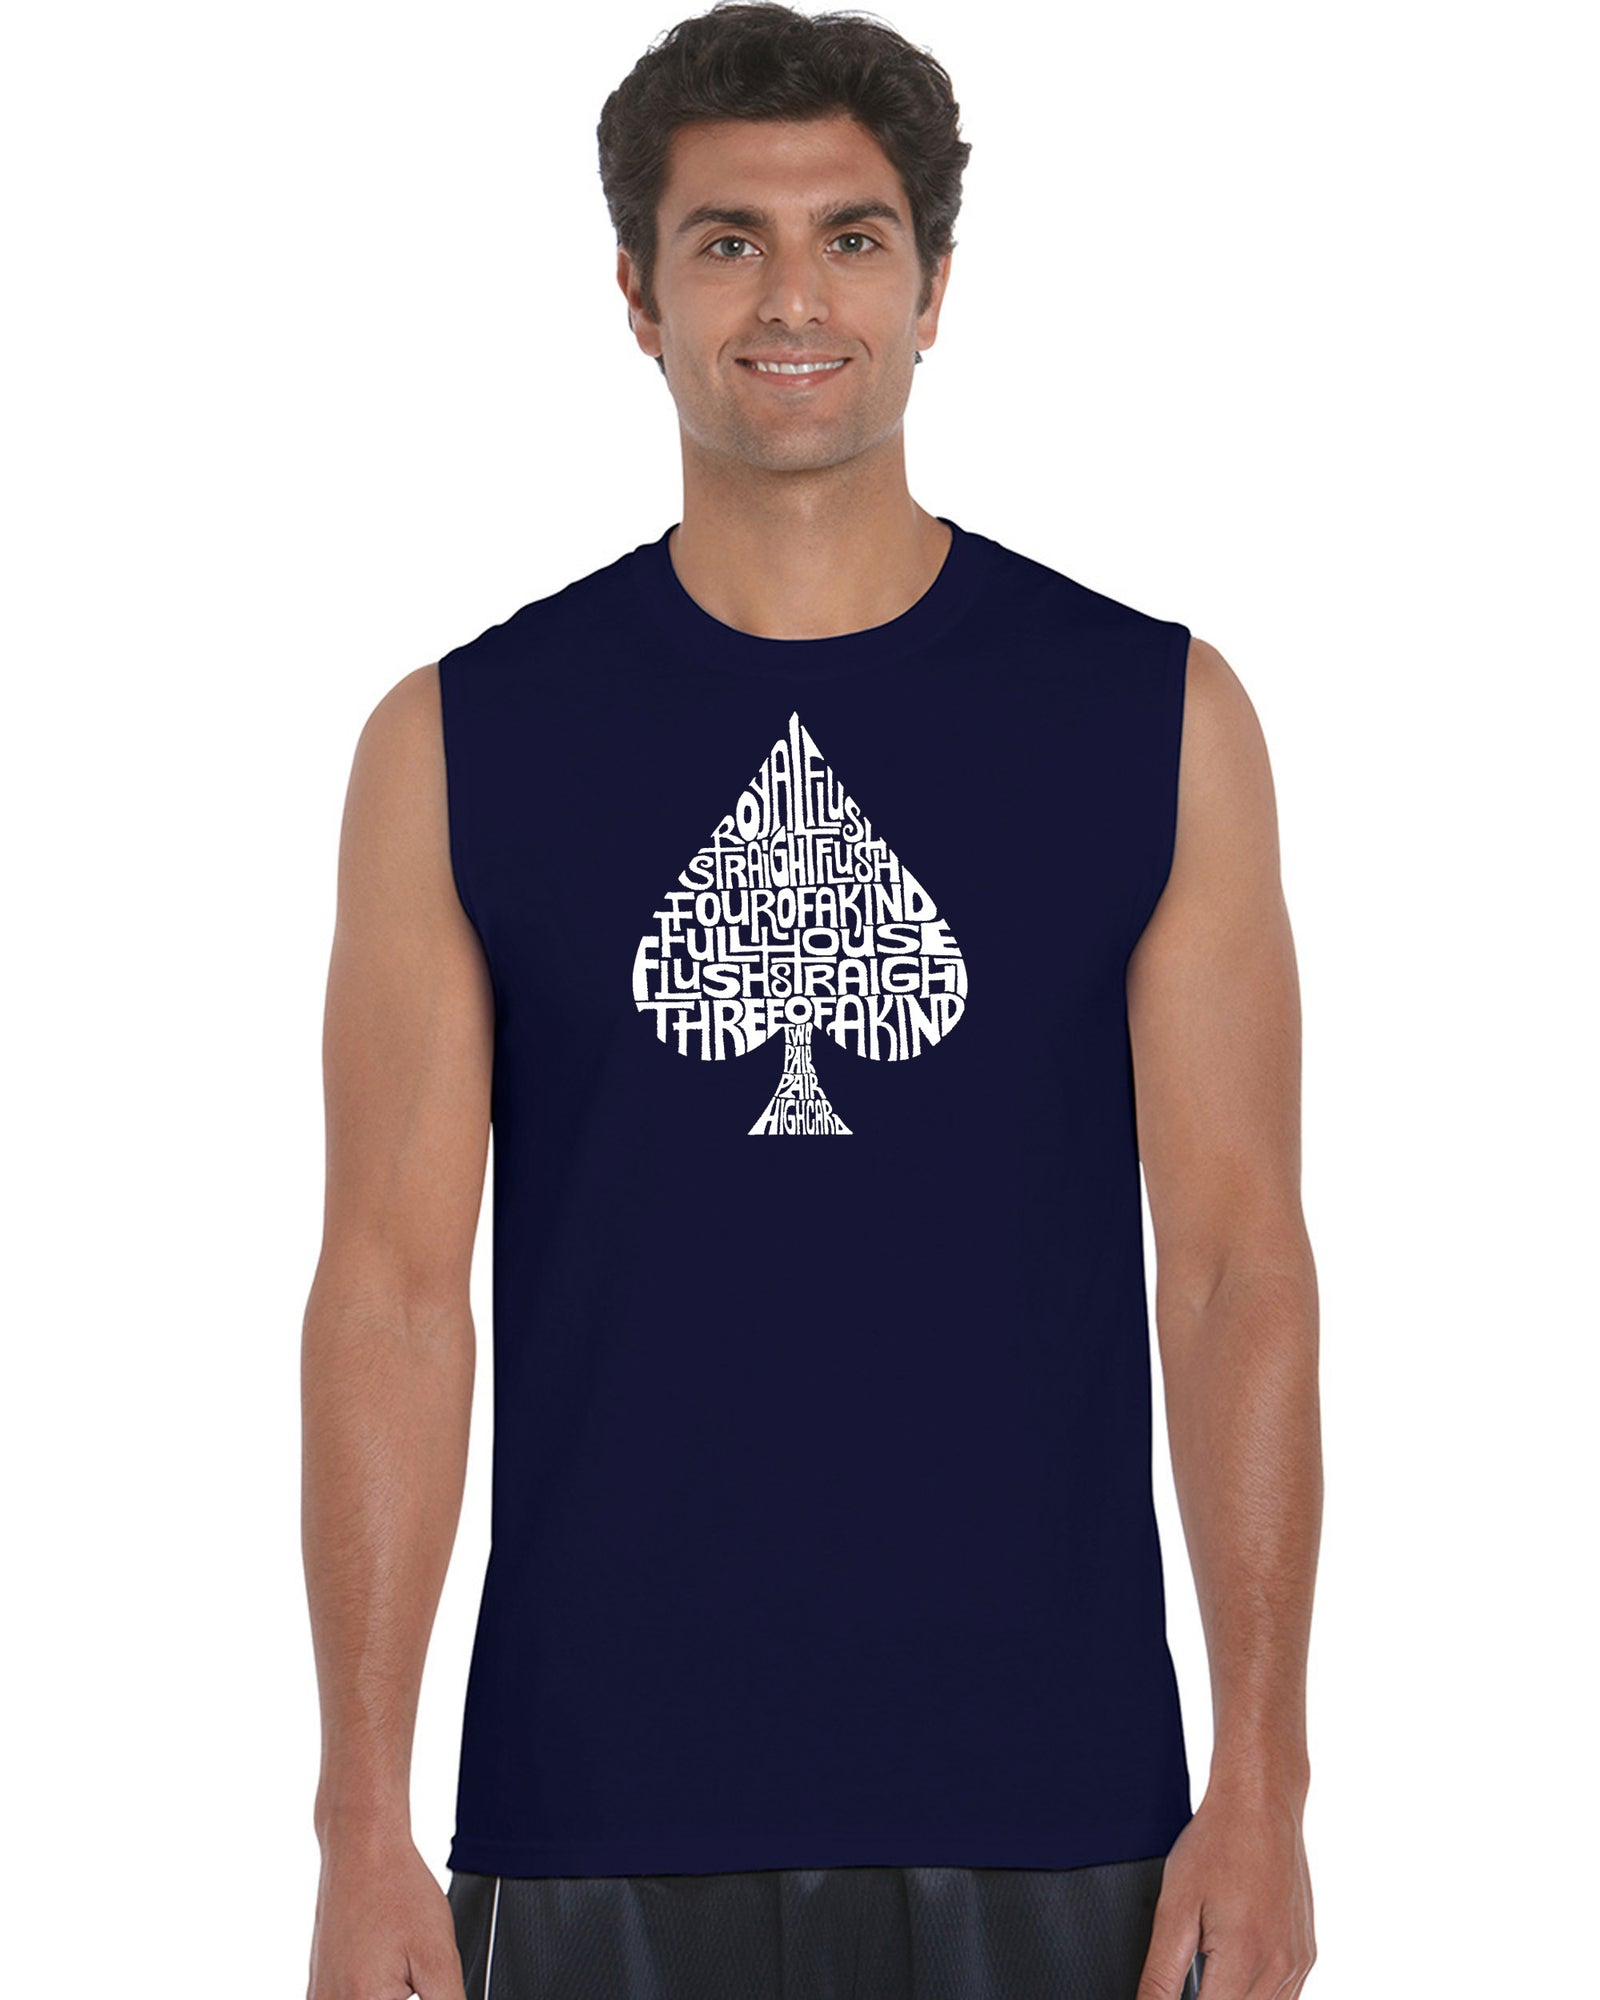 Men's Sleeveless T-shirt - ORDER OF WINNING POKER HANDS